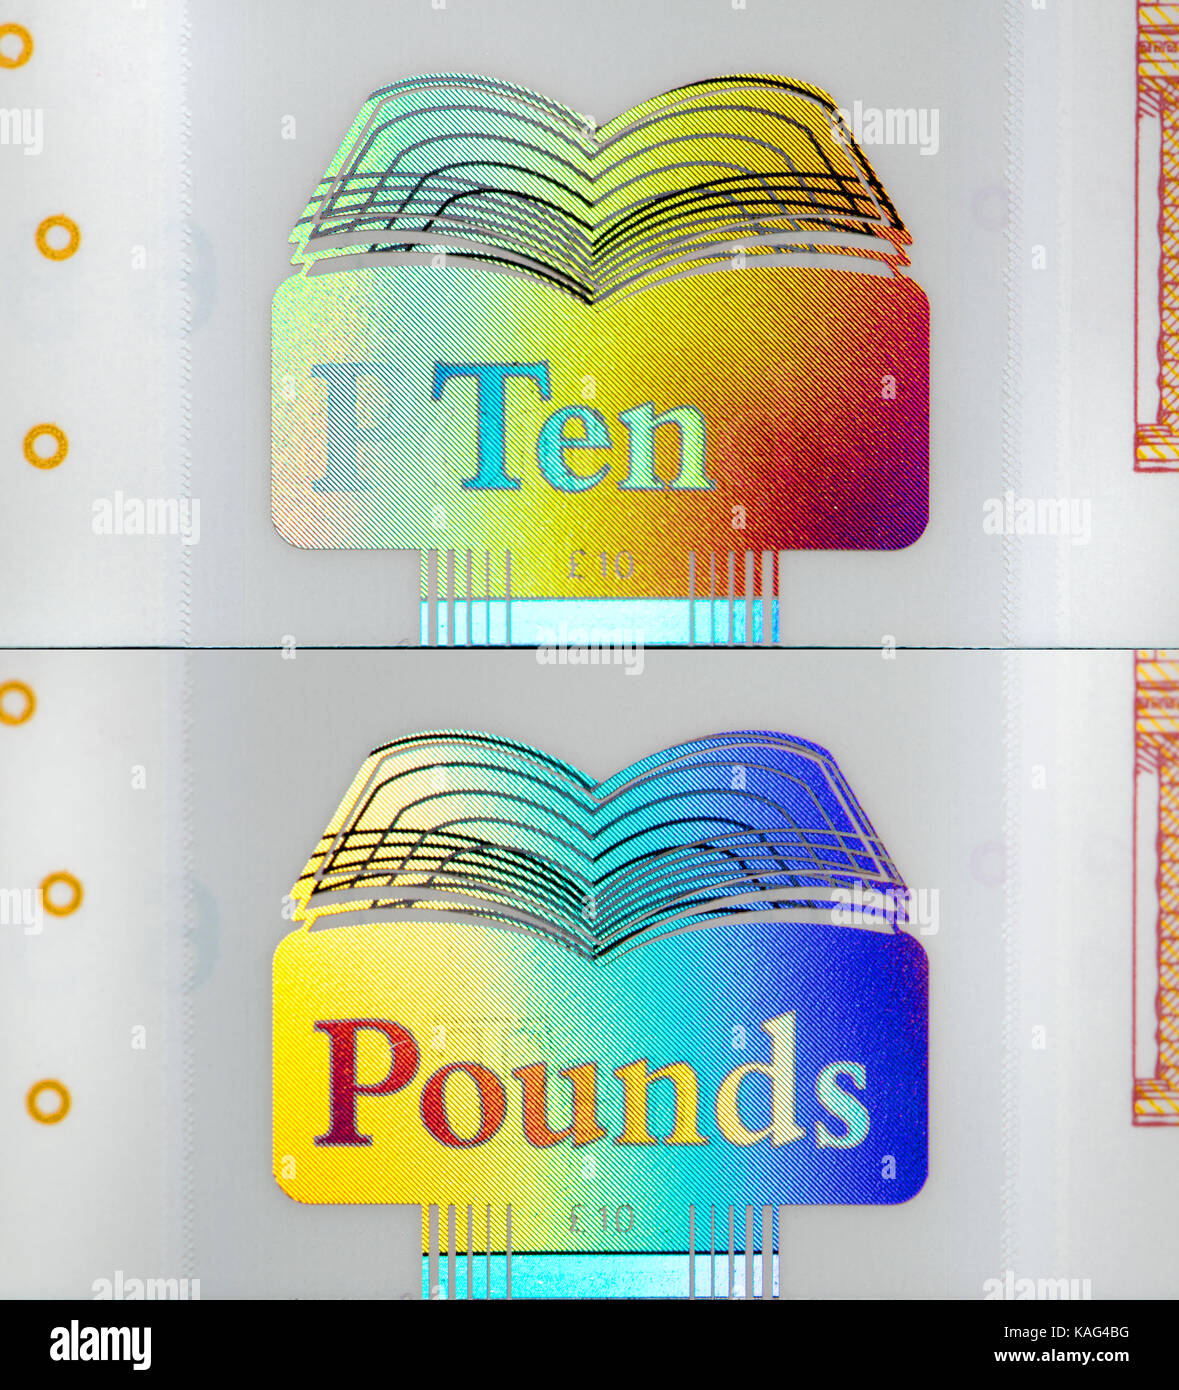 New Bank of England polymer £10 note (September 2017) composite, showing security feature: ten / pounds hologram - Stock Image